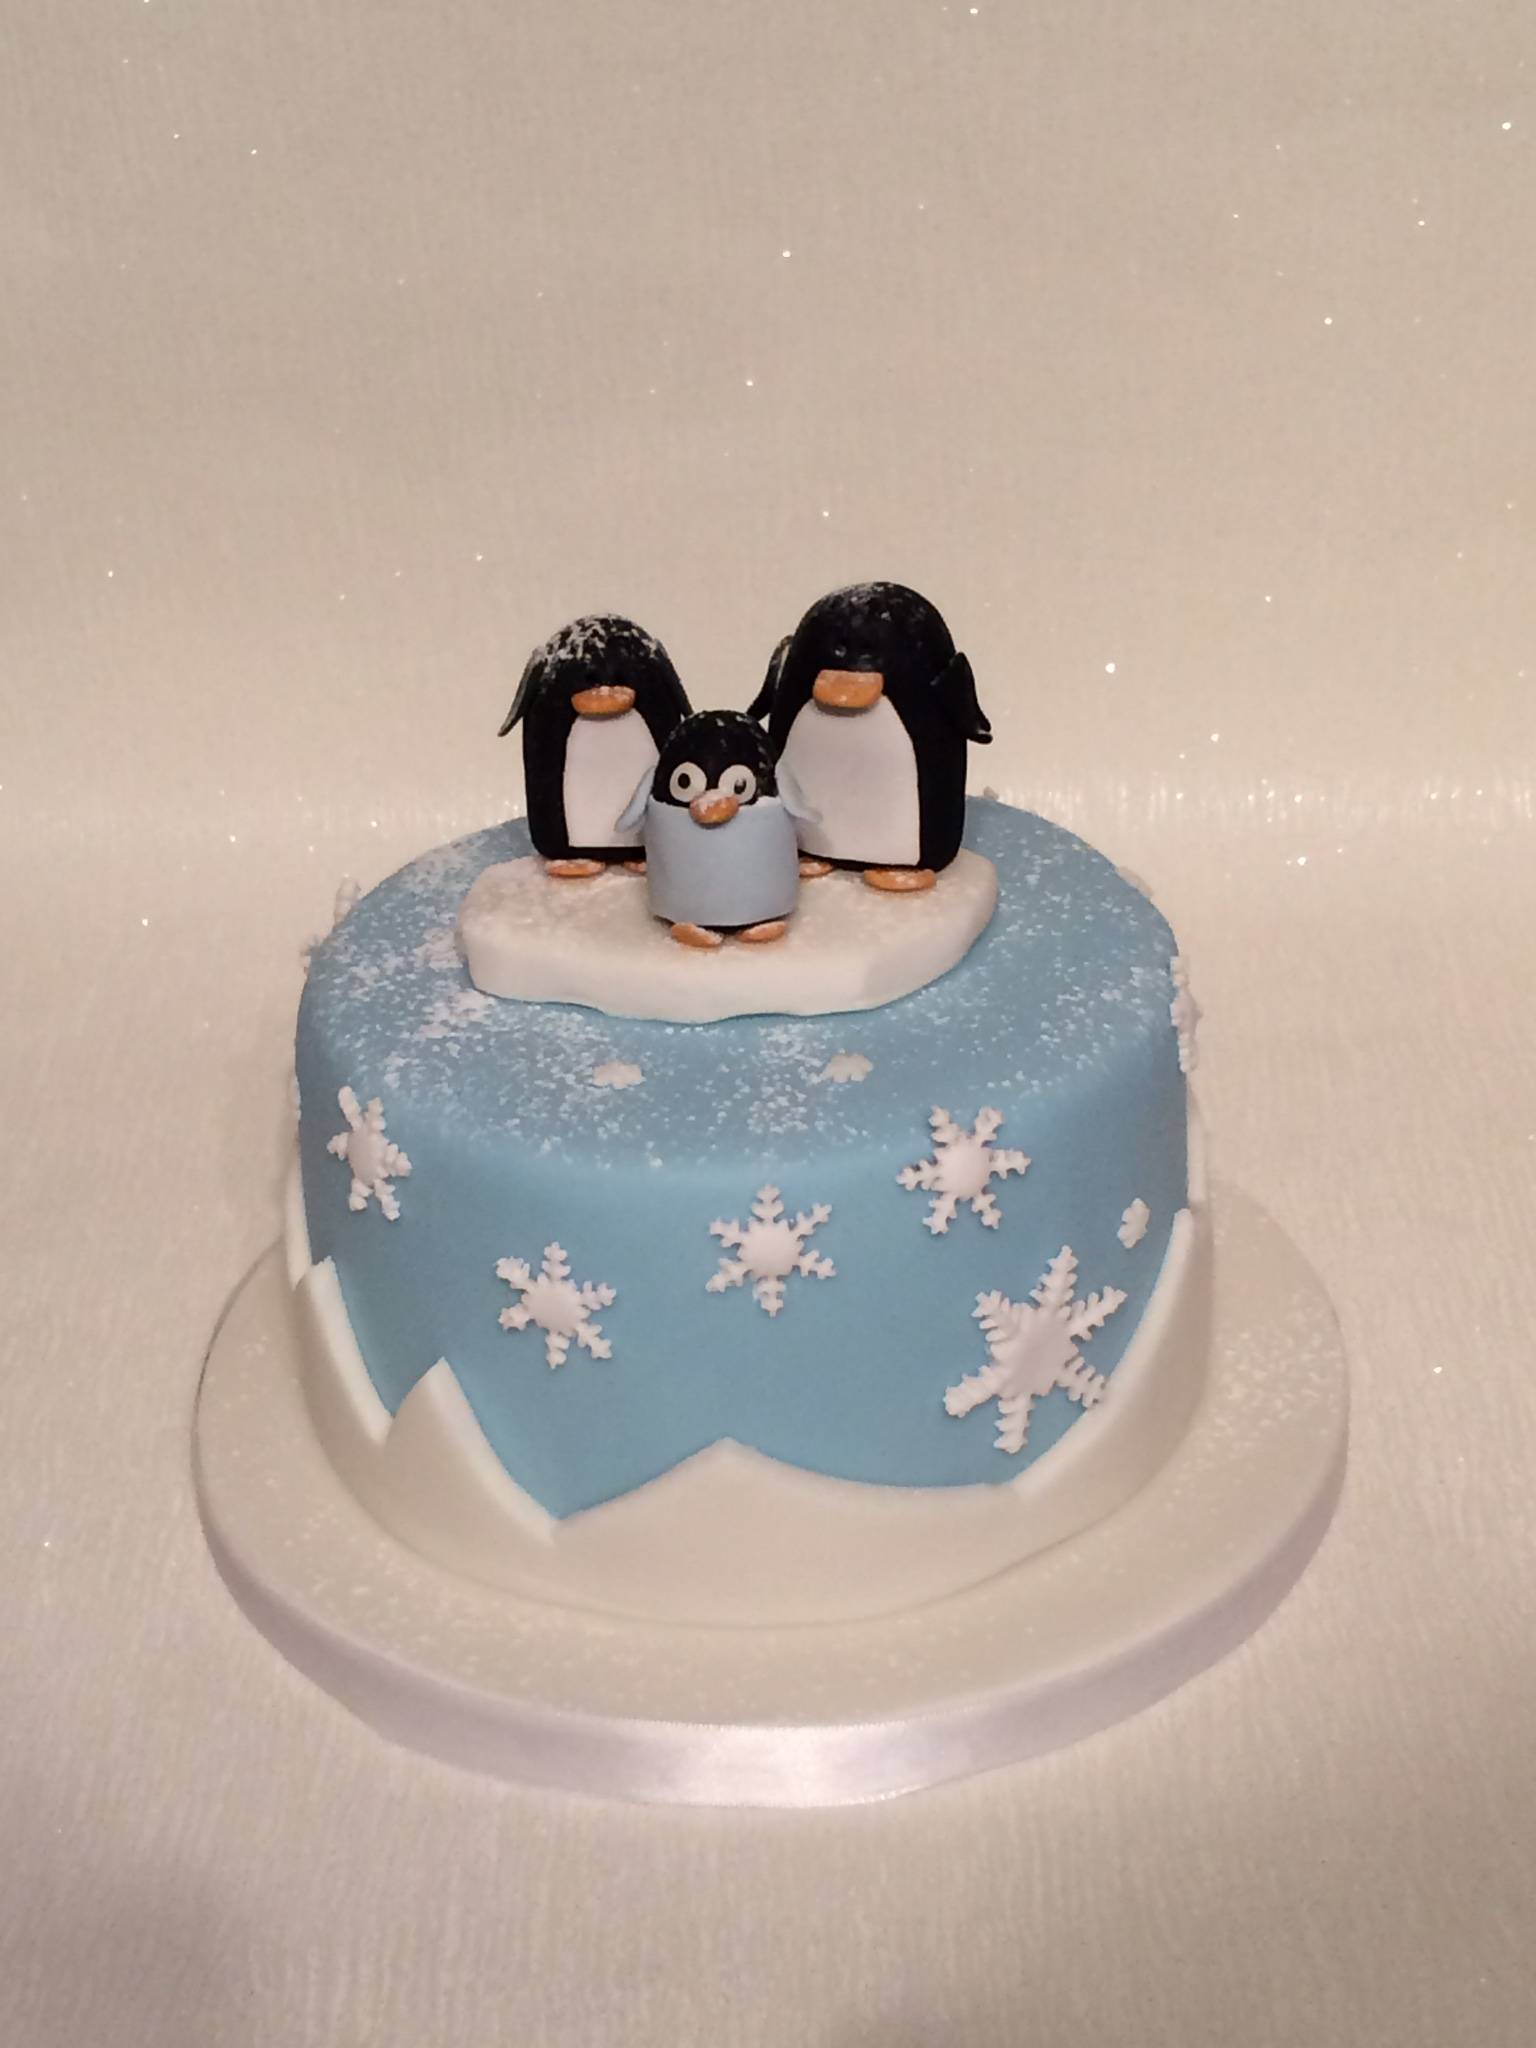 Christmas Cake Decorations Penguins : Other white s cake house